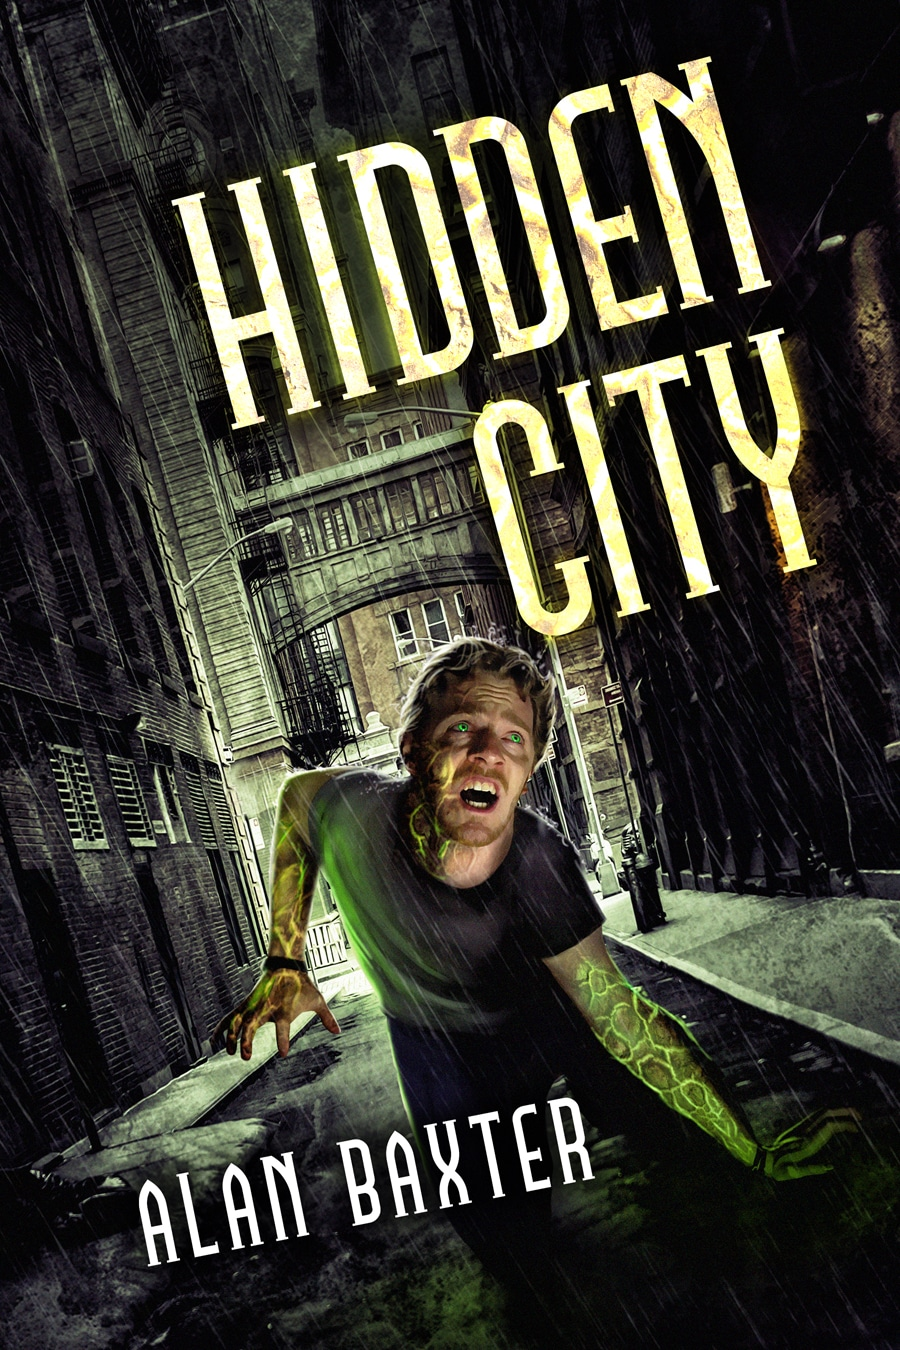 Alan Baxter: Five Things I Learned Writing Hidden City